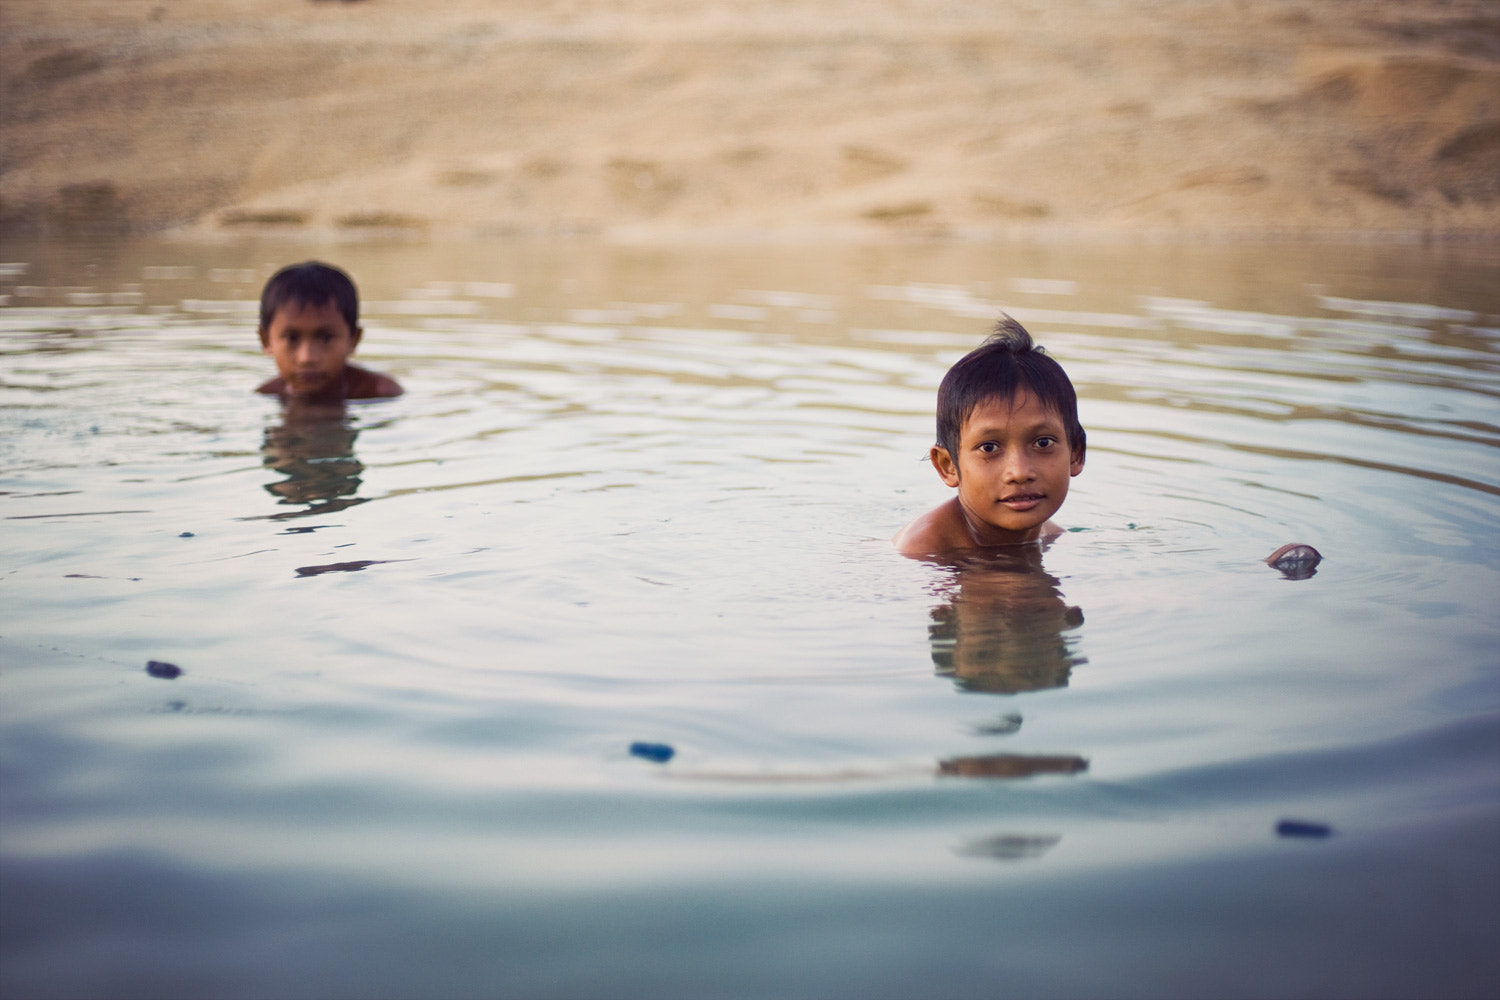 Photograph Children in a river by Raphaël Dupertuis on 500px